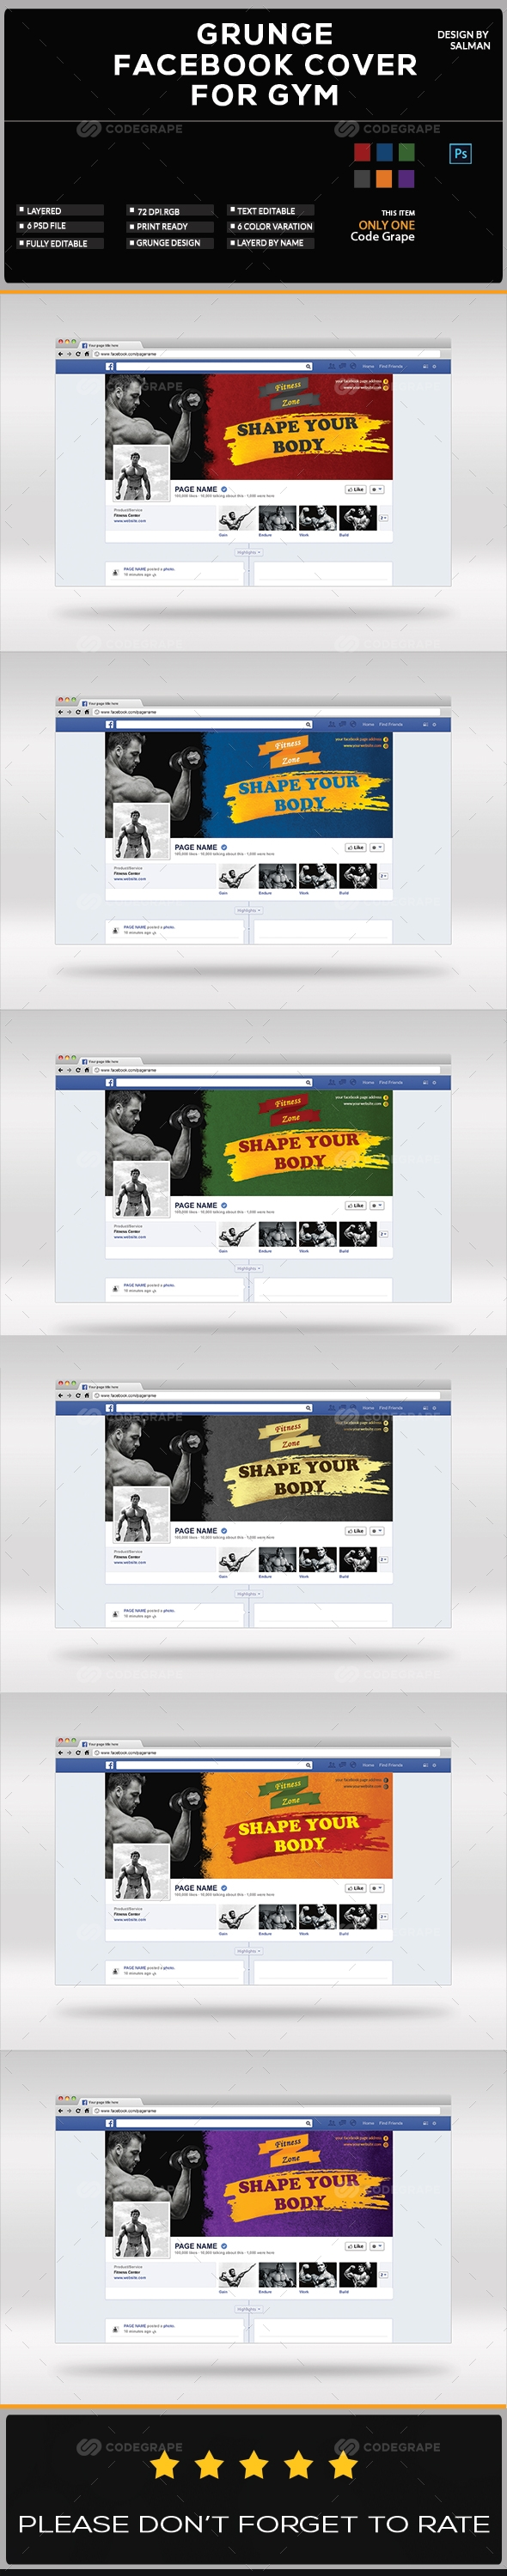 Grunge Facebook Cover for GYM